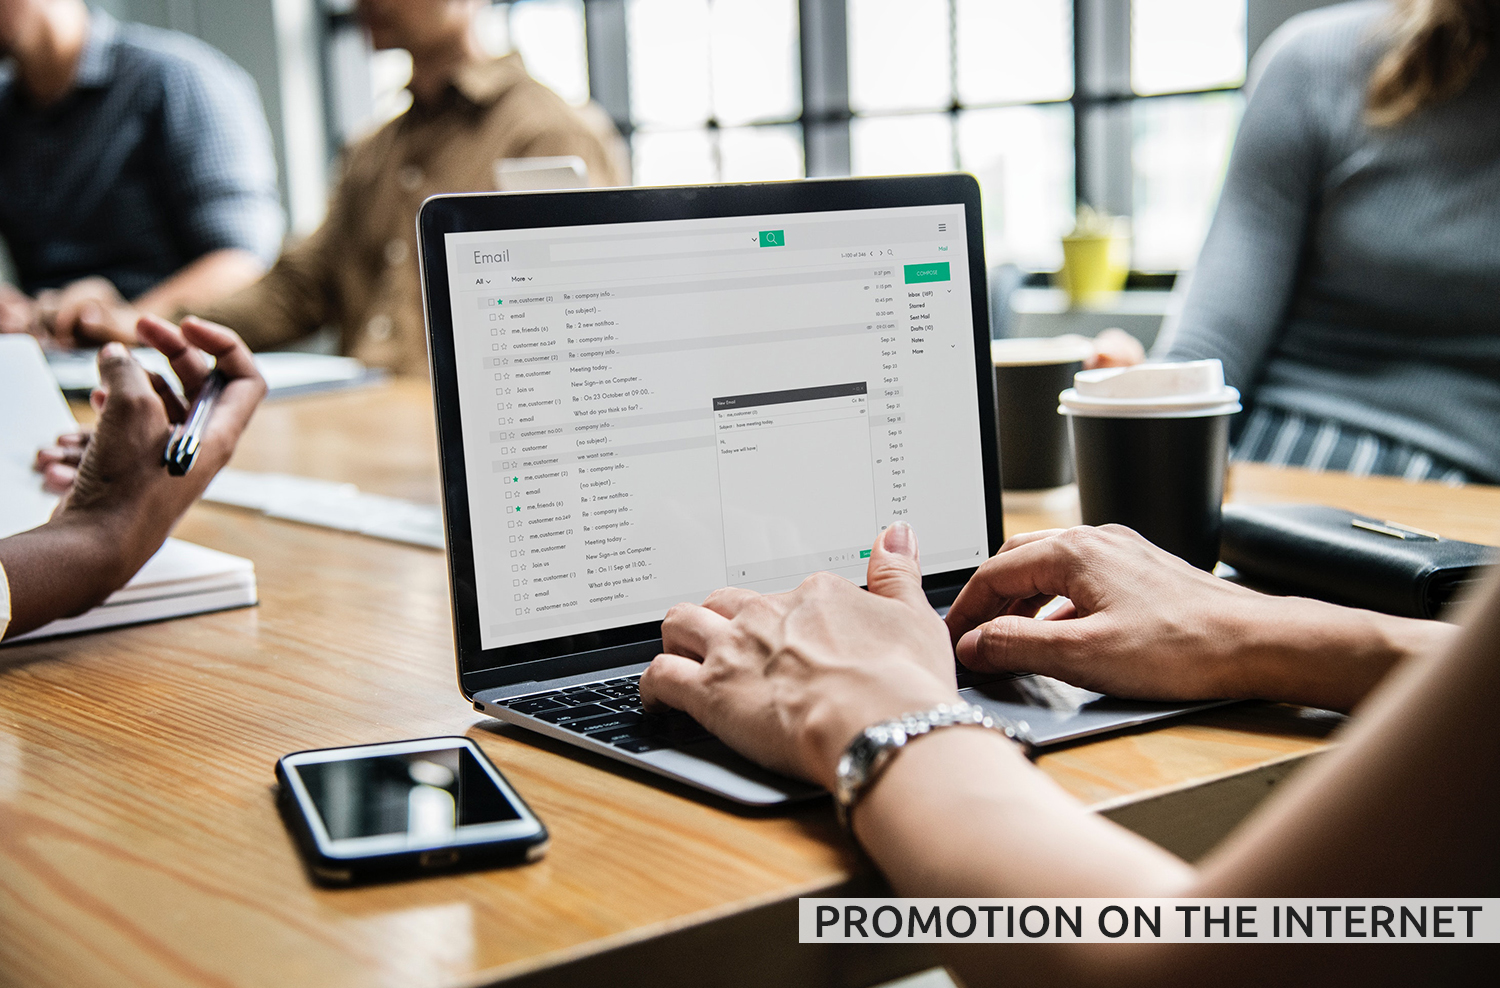 promotion on the internet